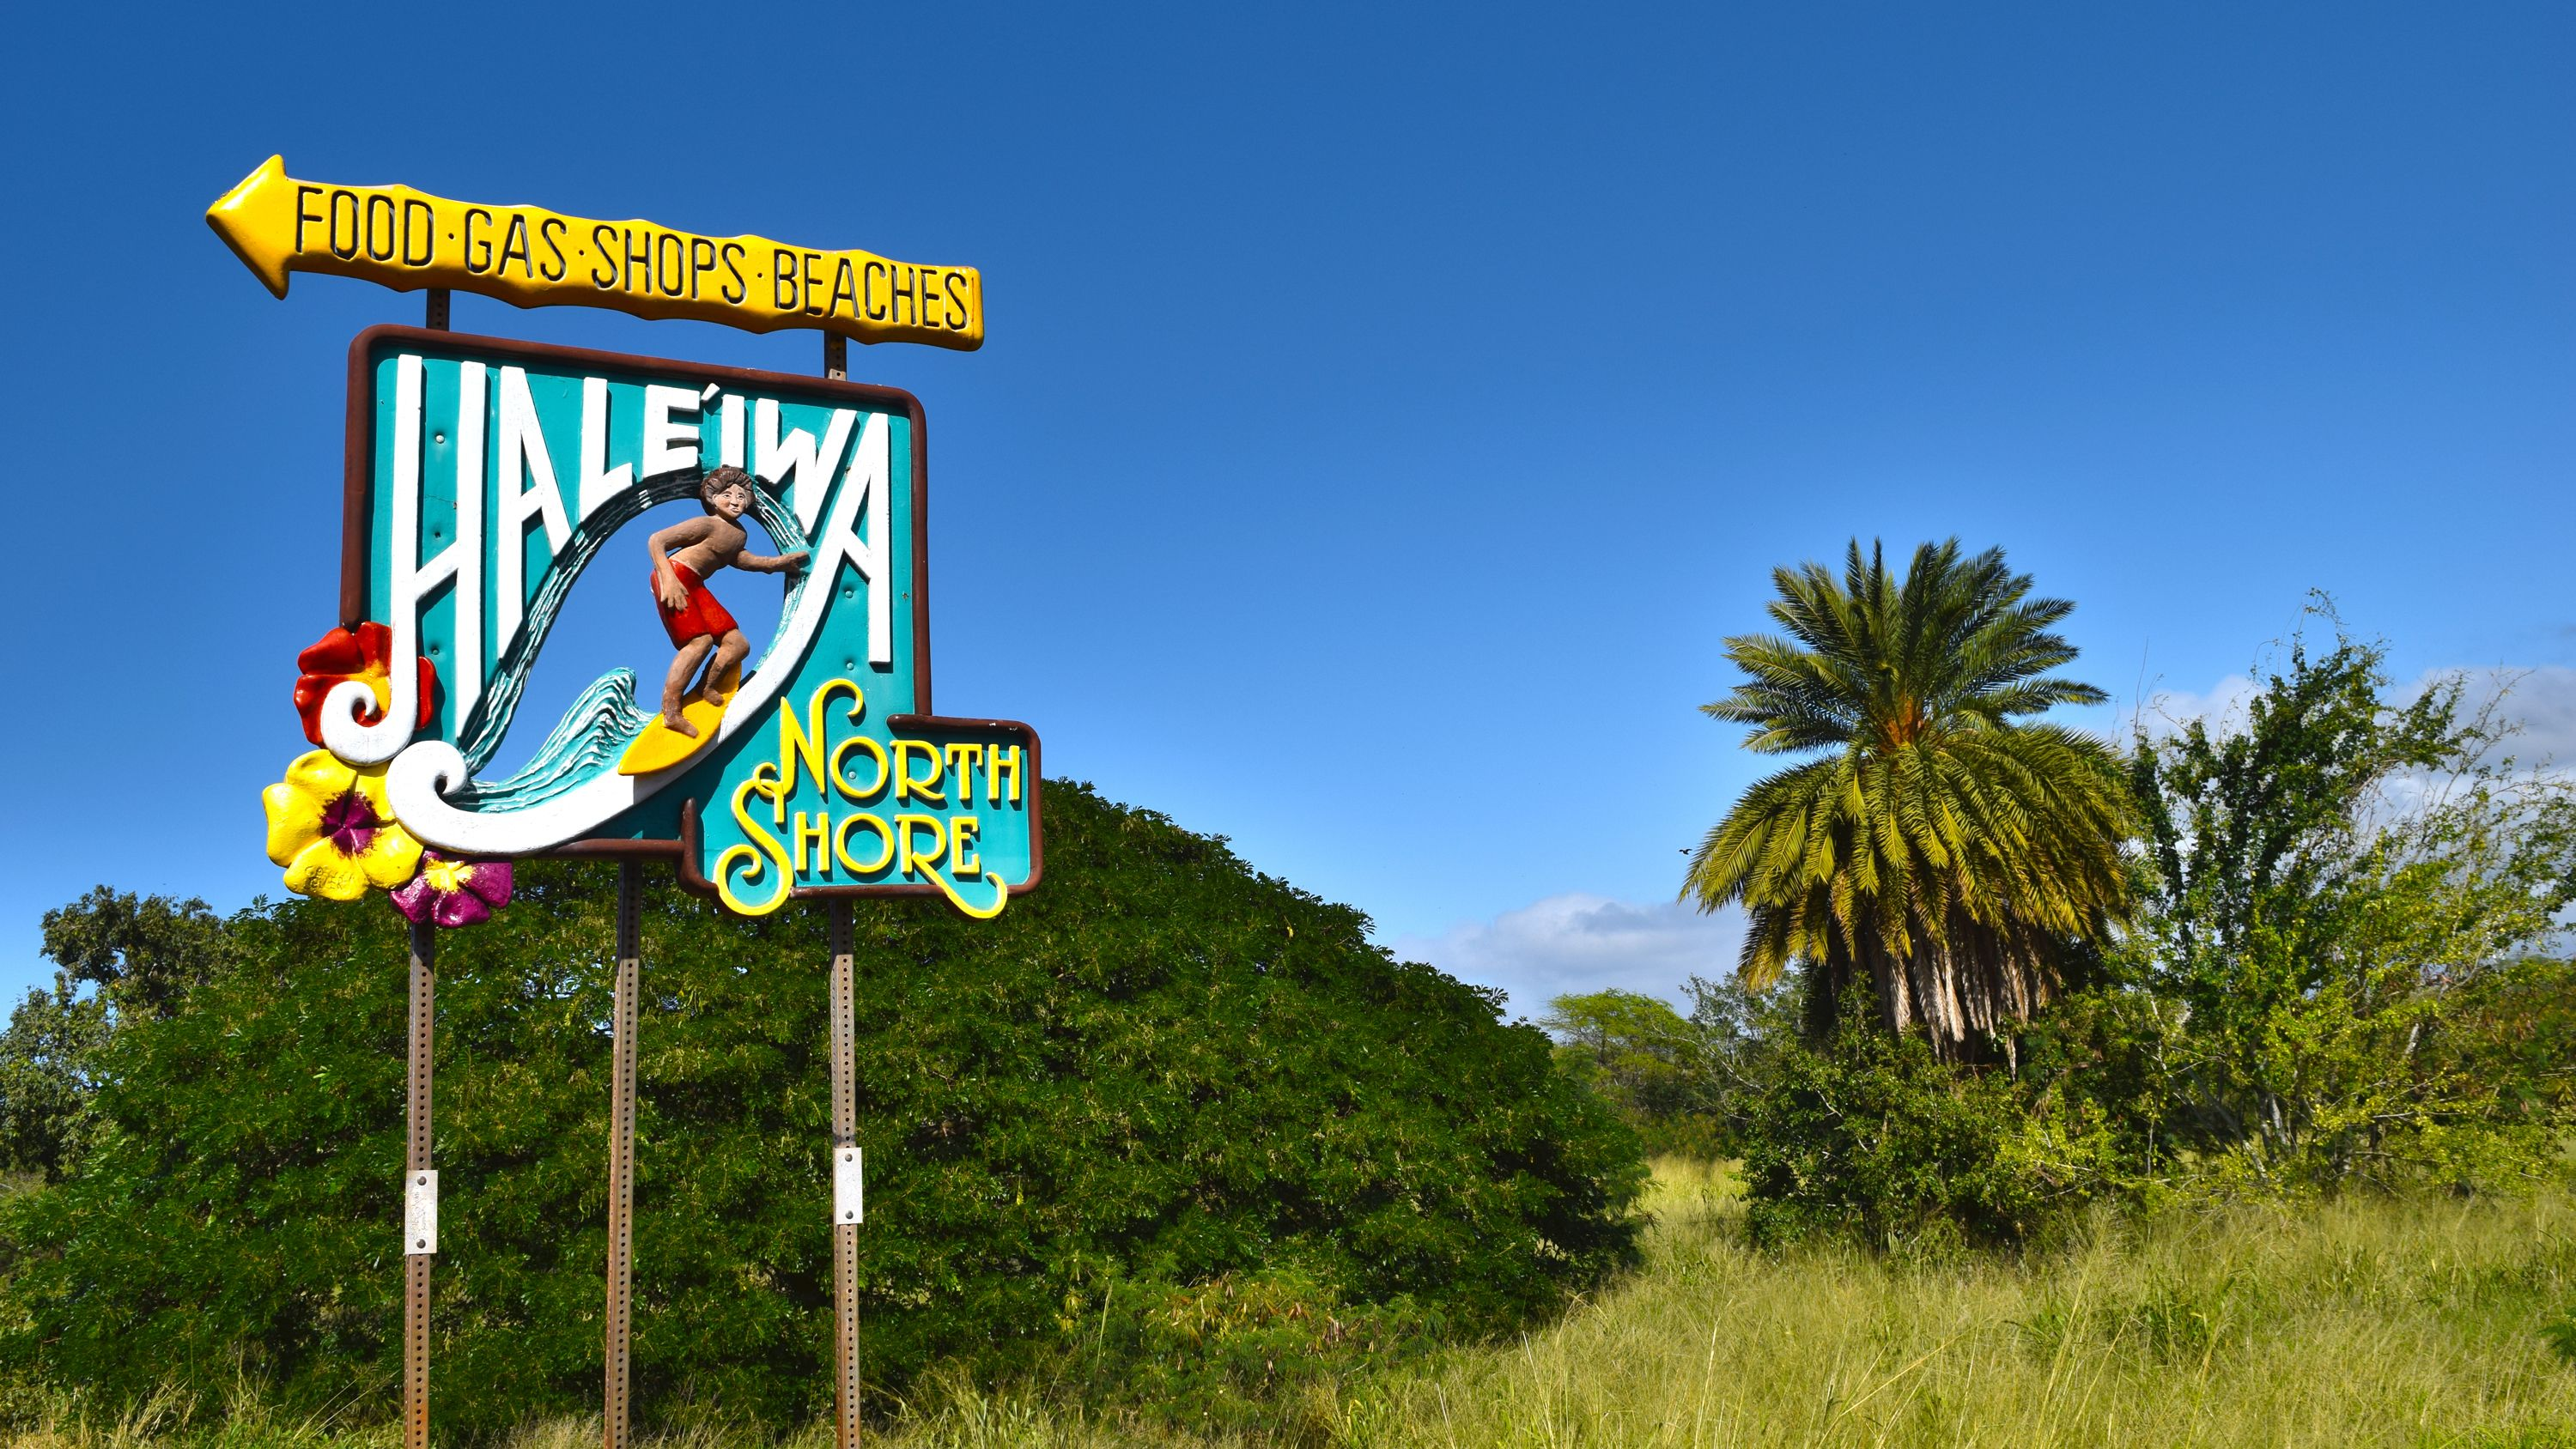 Colorful sign for Haleiwa North Shore